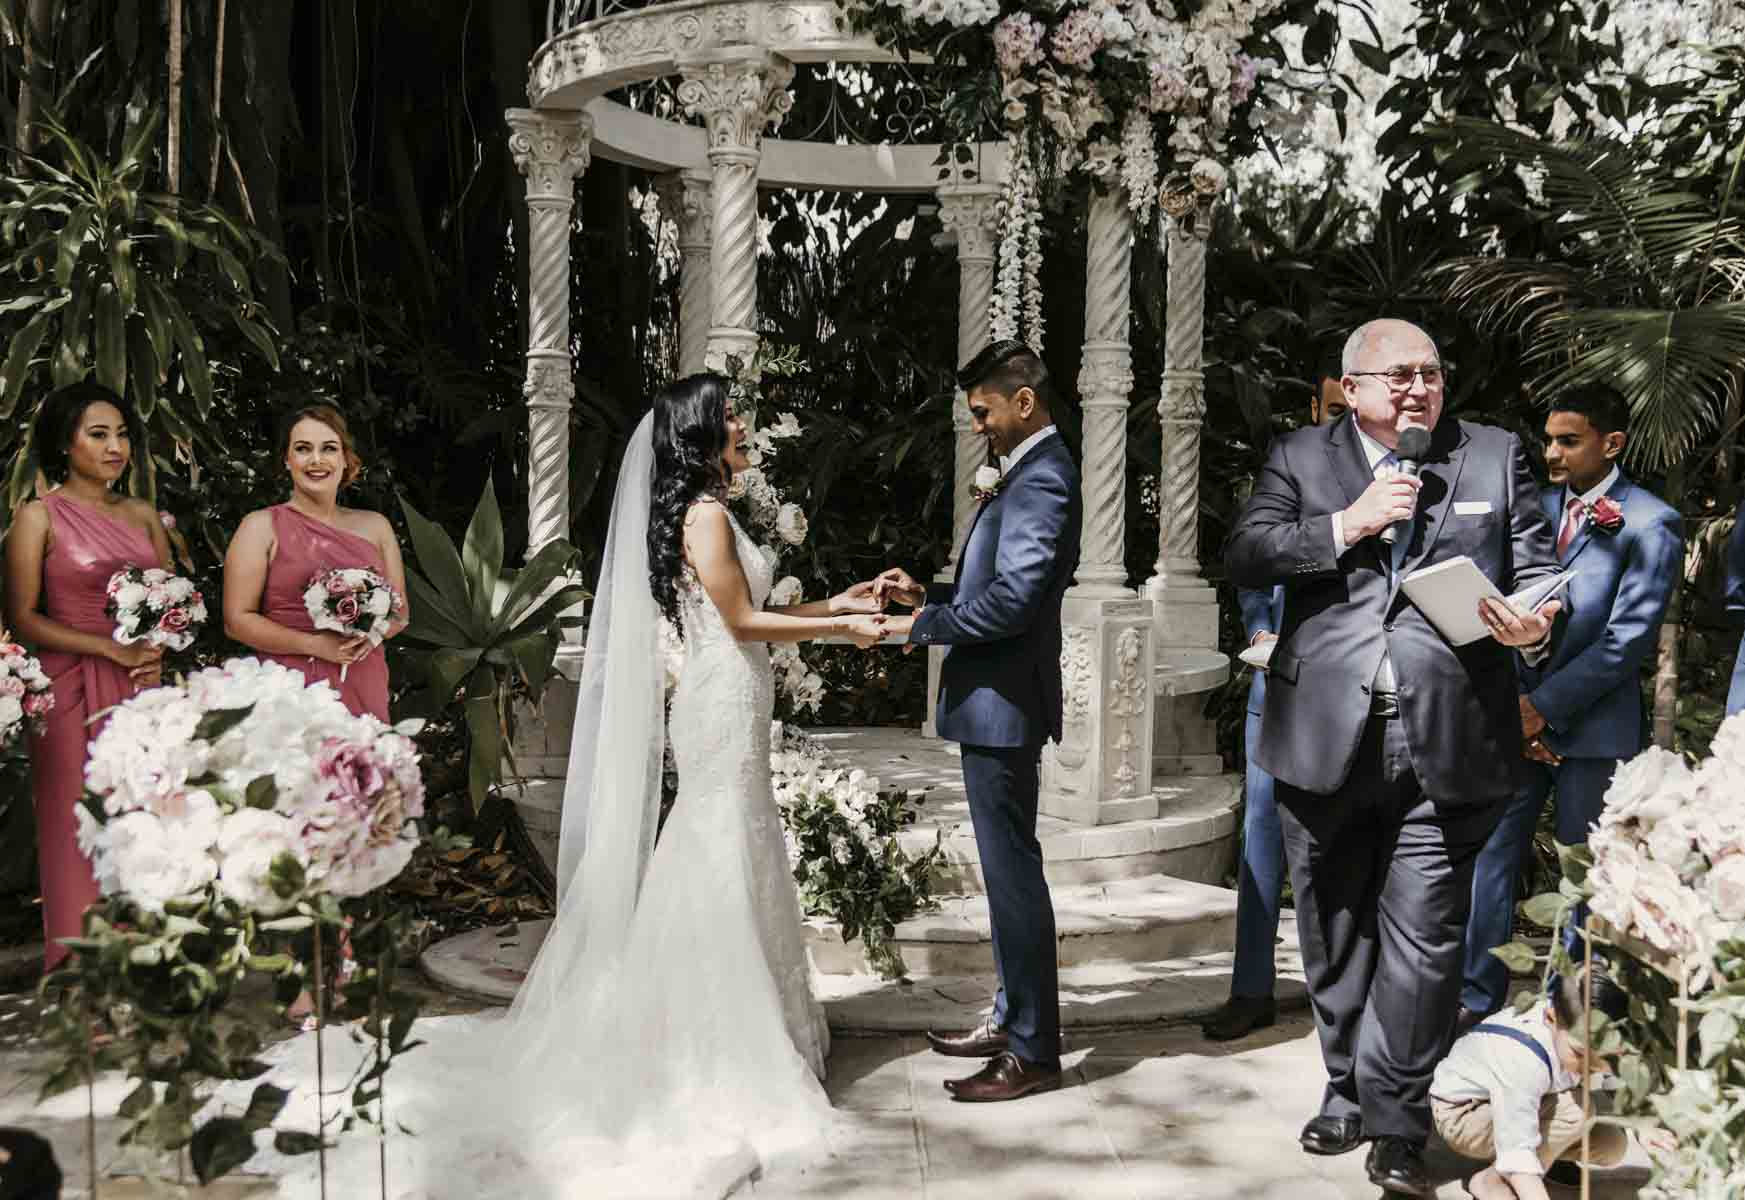 Shay and Uppi's modern and romantic garden civil wedding ceremony took place at Boulevard Gardens in Brisbane, Australia.